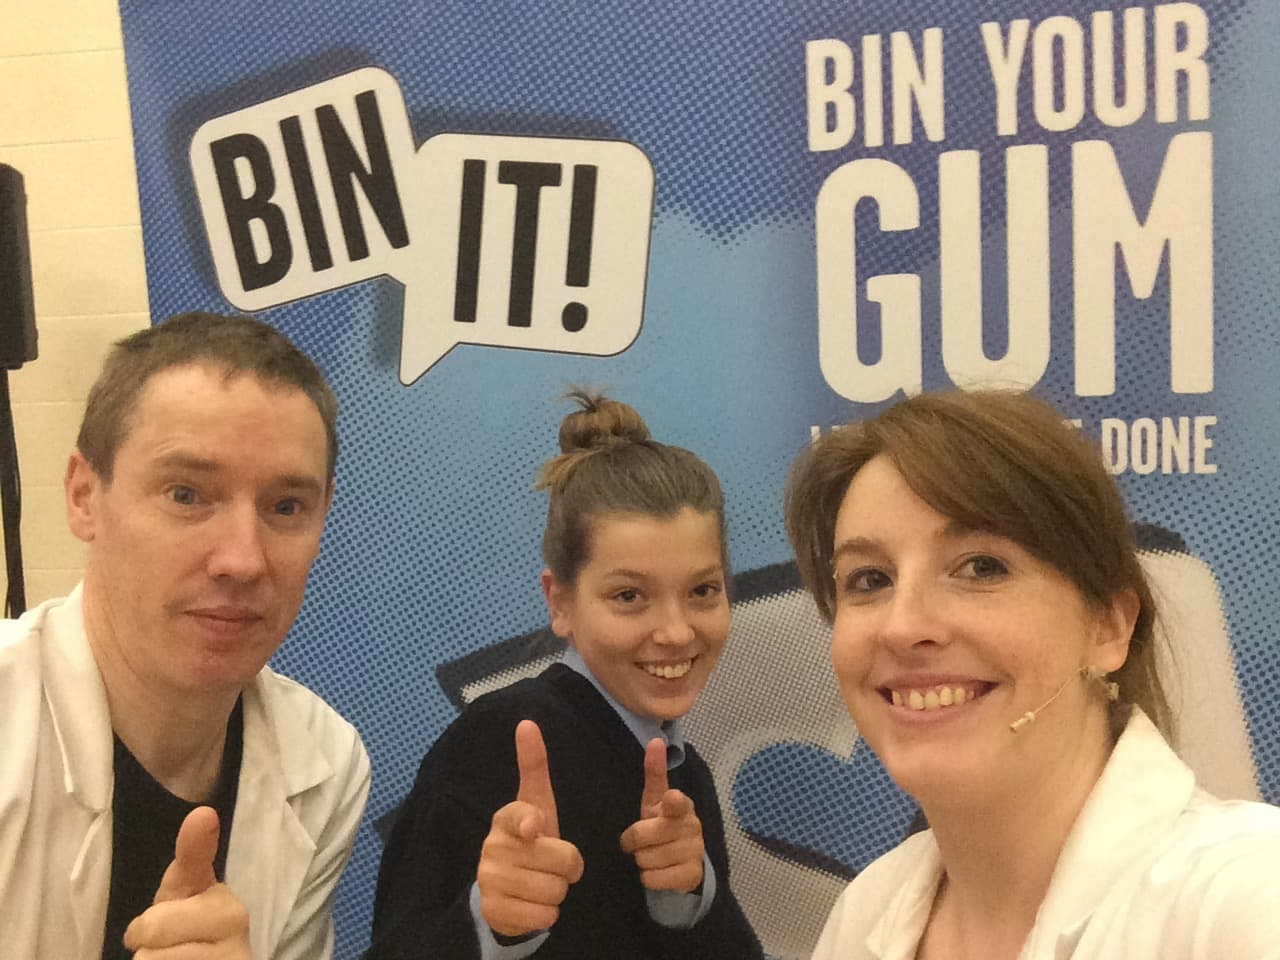 The Bin It crew at Mary Immaculate Secondary School, Lisdoonvarna